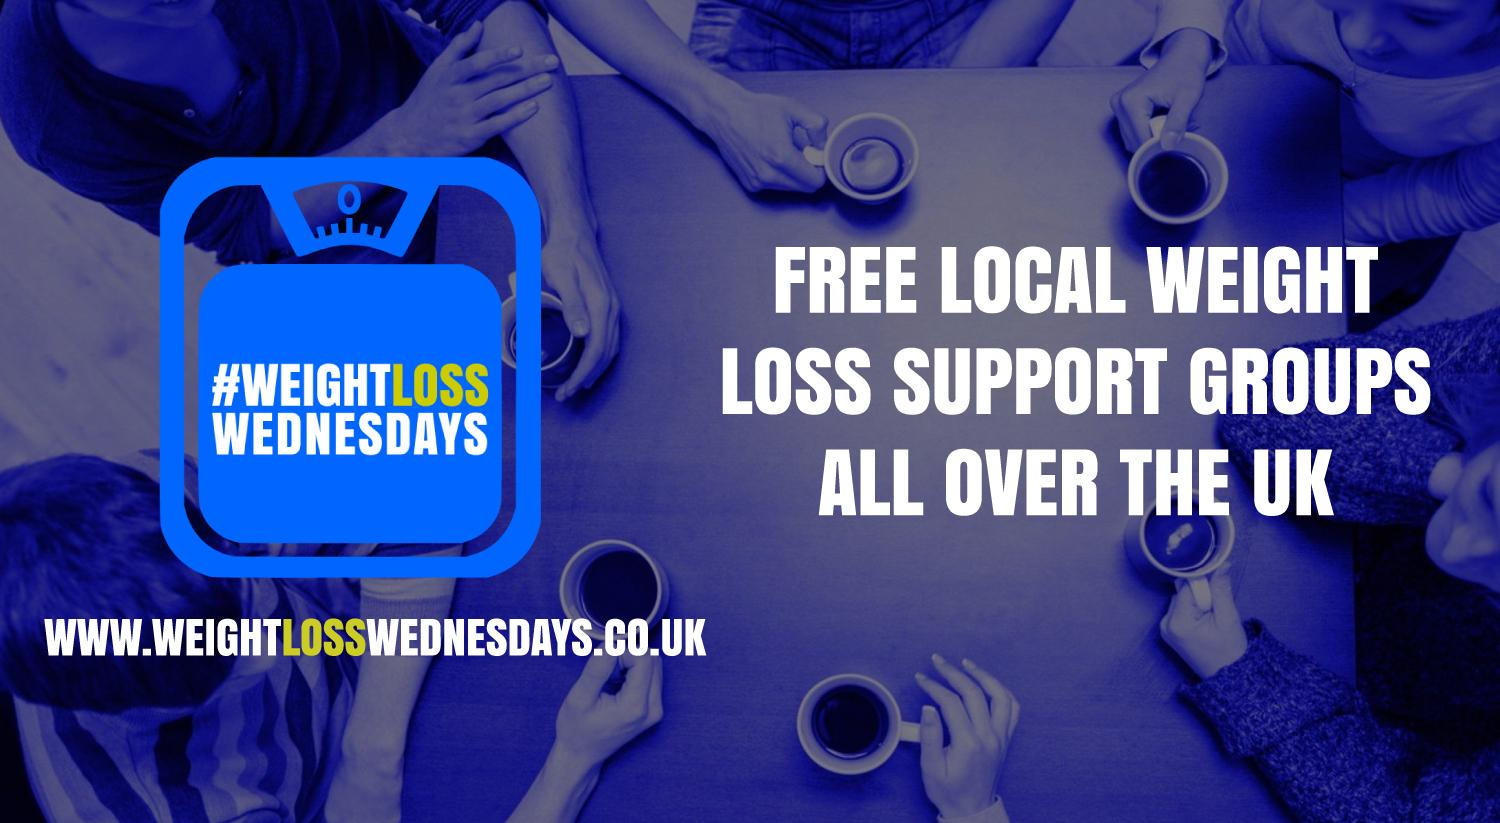 WEIGHT LOSS WEDNESDAYS! Free weekly support group in Biddulph